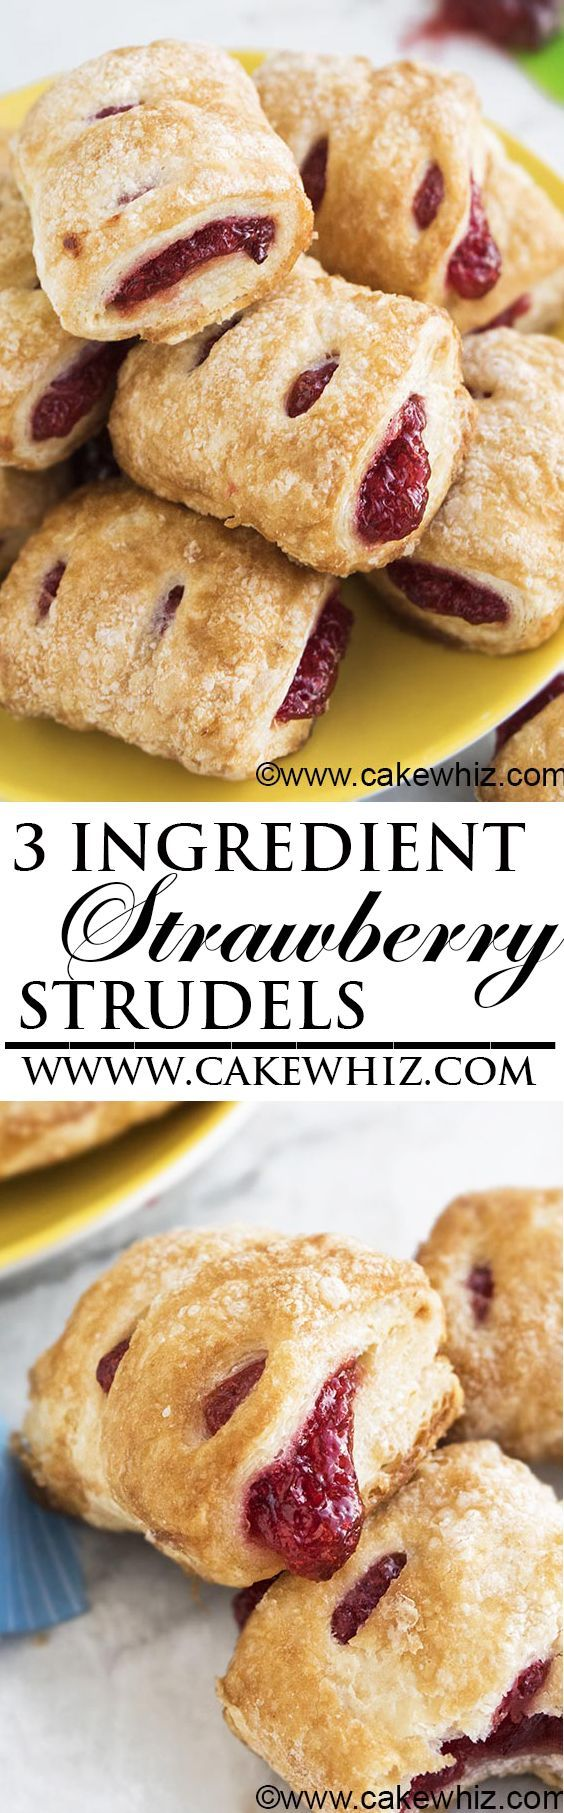 These EASY STRAWBERRY STRUDELS have perfect flaky sugary crispy tops with fruity berry fillings. Great as a Summer snack and ready in just 30 minutes with 3 ingredients! From http://cakewhiz.com